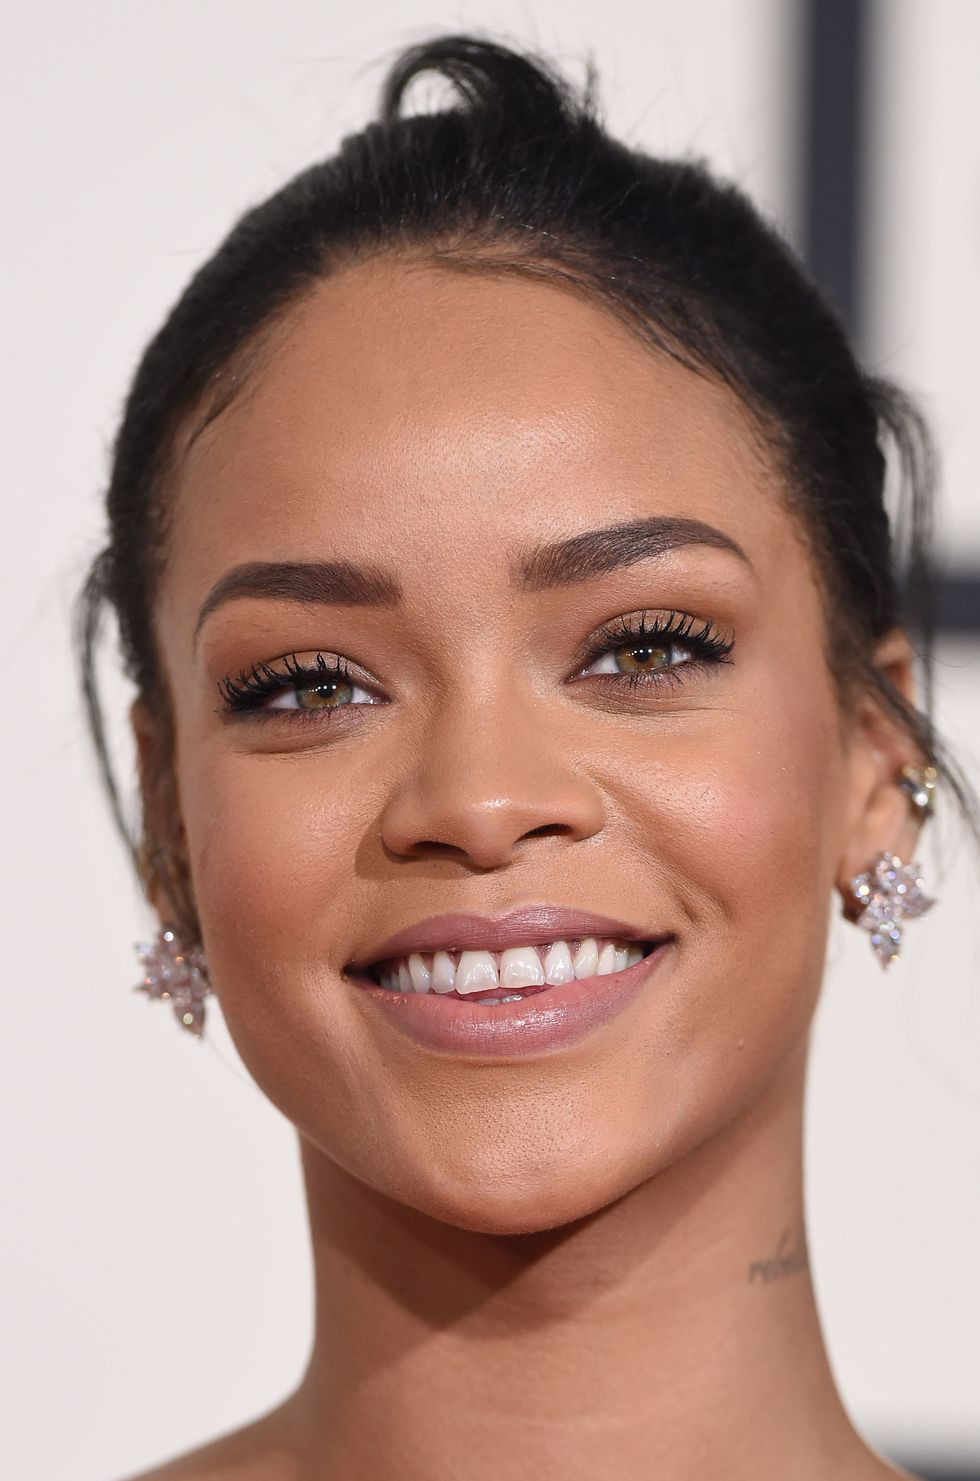 soft-natural-how-to-do-your-makeup-for-wedding-guest-beauty-rihanna.jpg